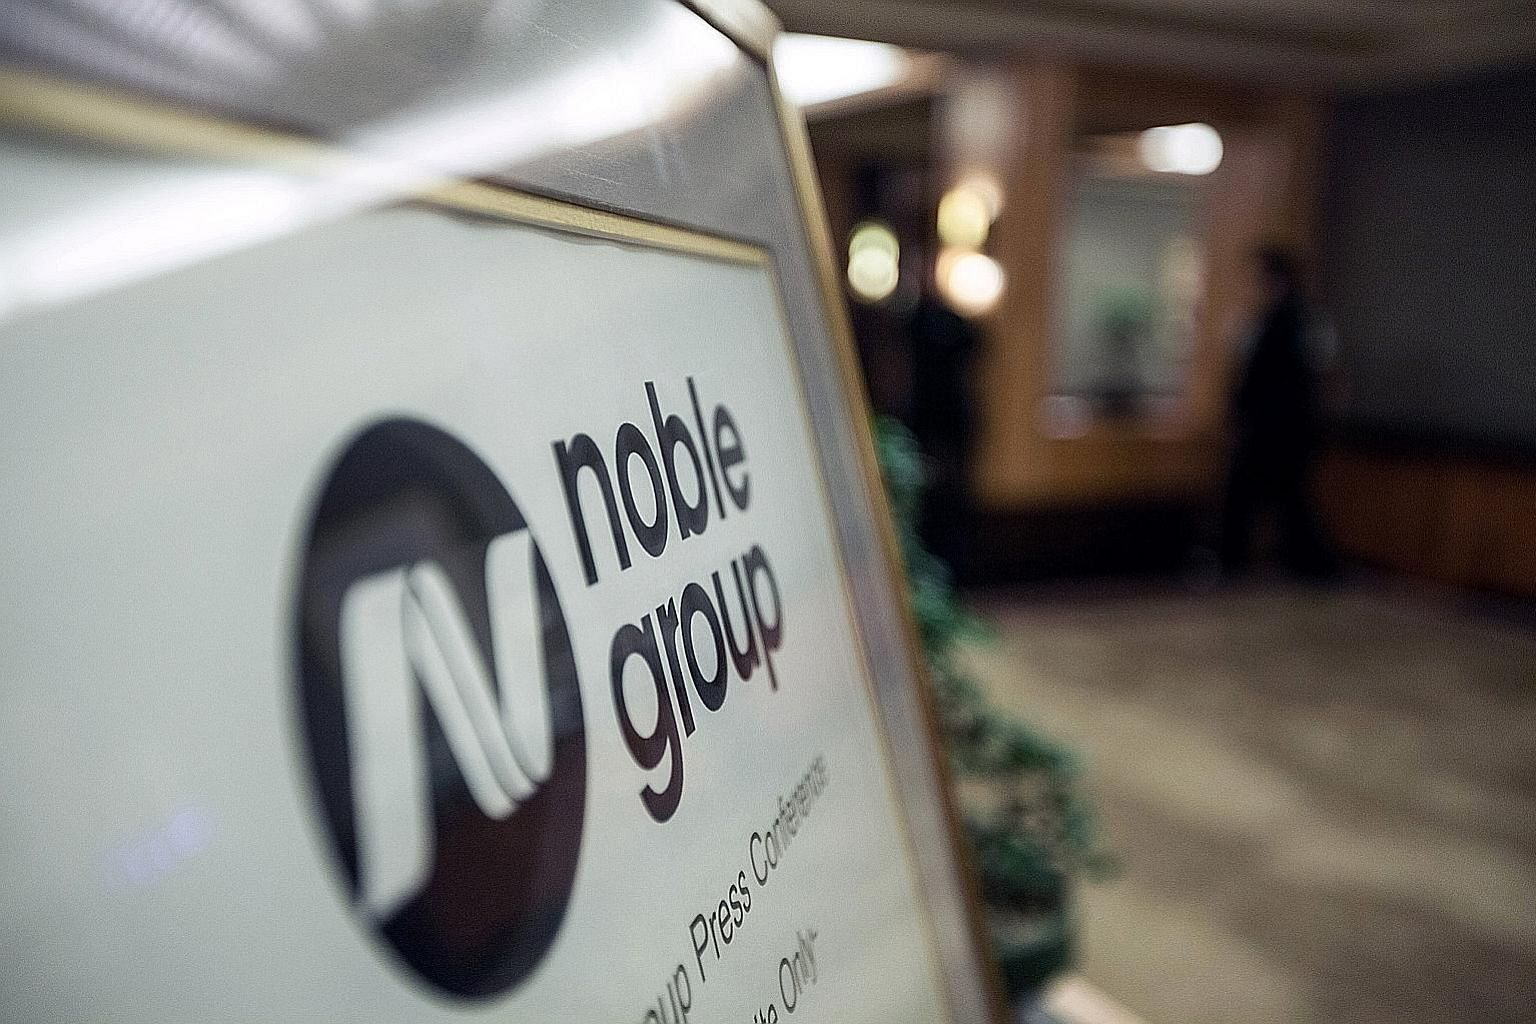 The Commercial Affairs Department and Monetary Authority of Singapore as well as the Accounting and Corporate Regulatory Authority are probing Noble Group for suspected false and misleading statements and breaches of disclosure requirements. The grou